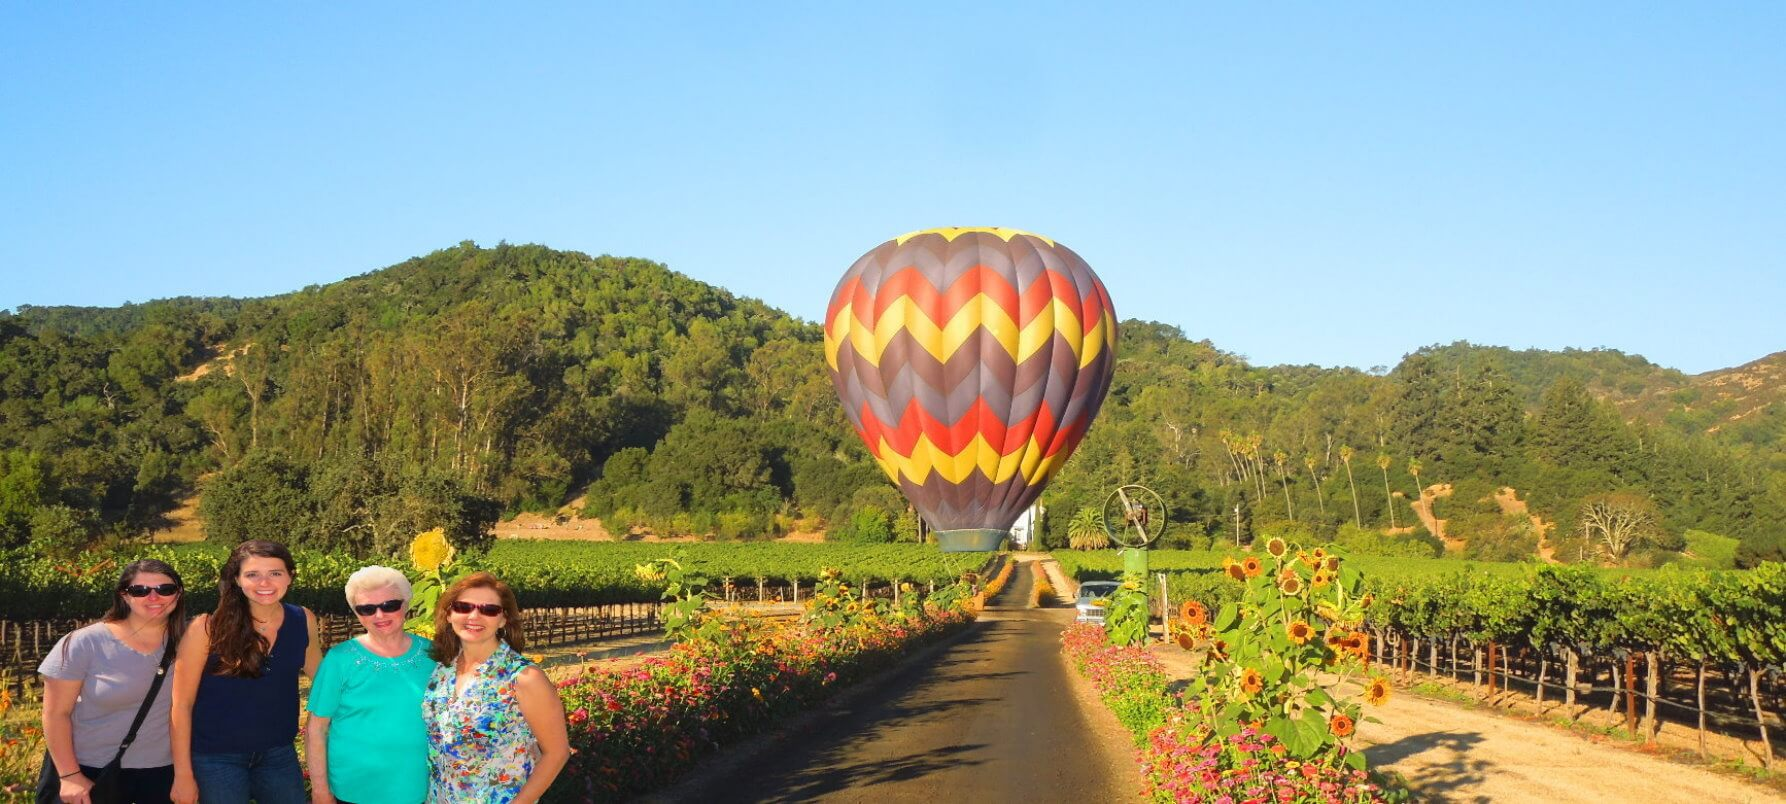 napa-valley-hot-_air-balloon-rides-alcatraz-tours